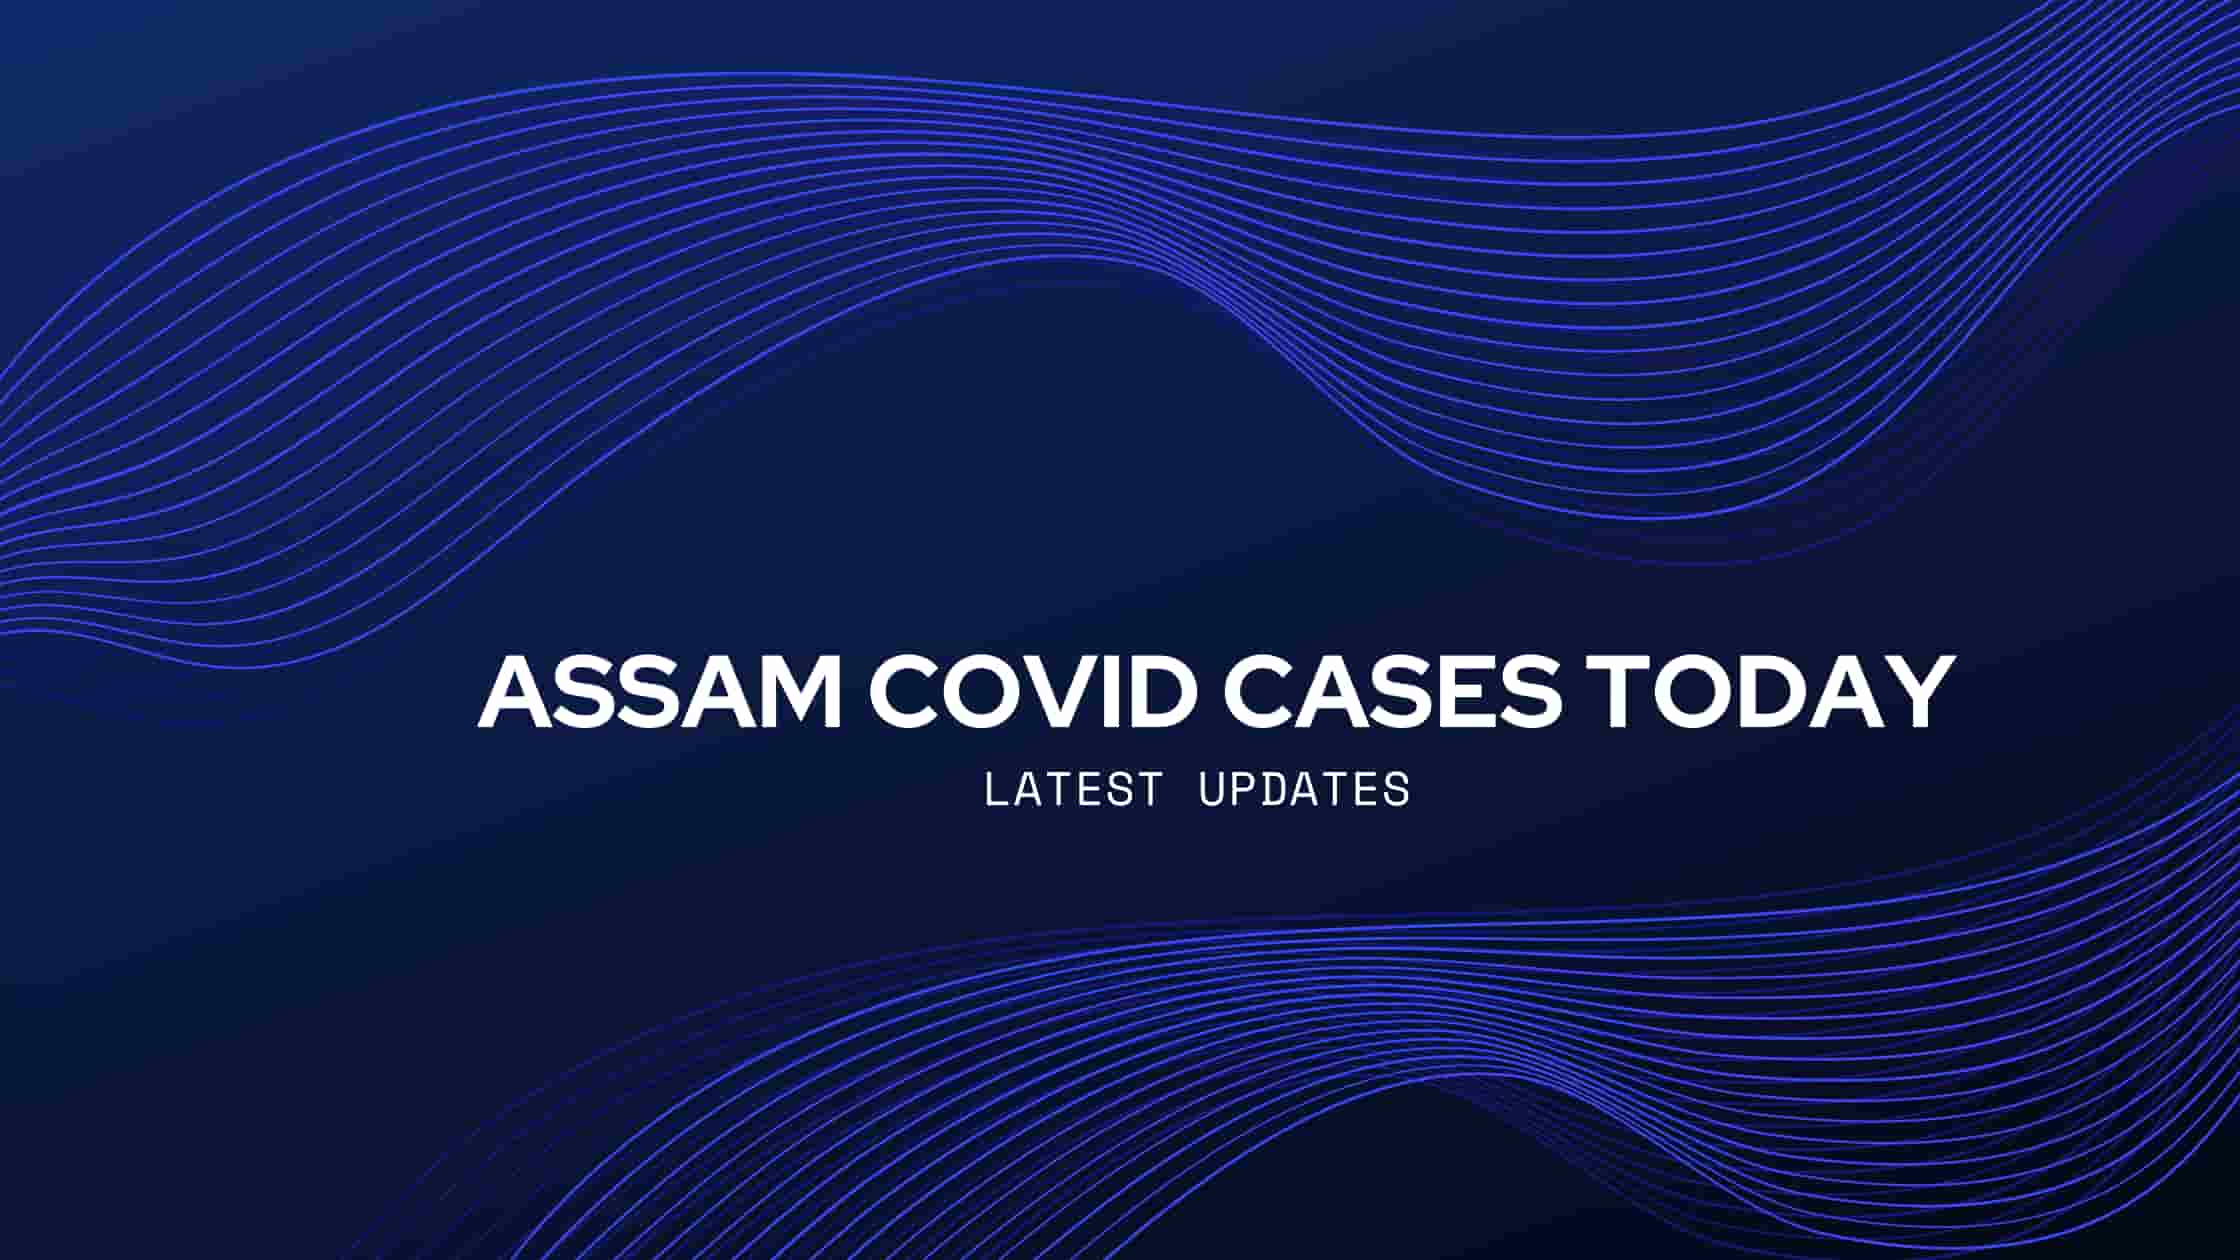 ASSAM COVID 19 CASES TODAY